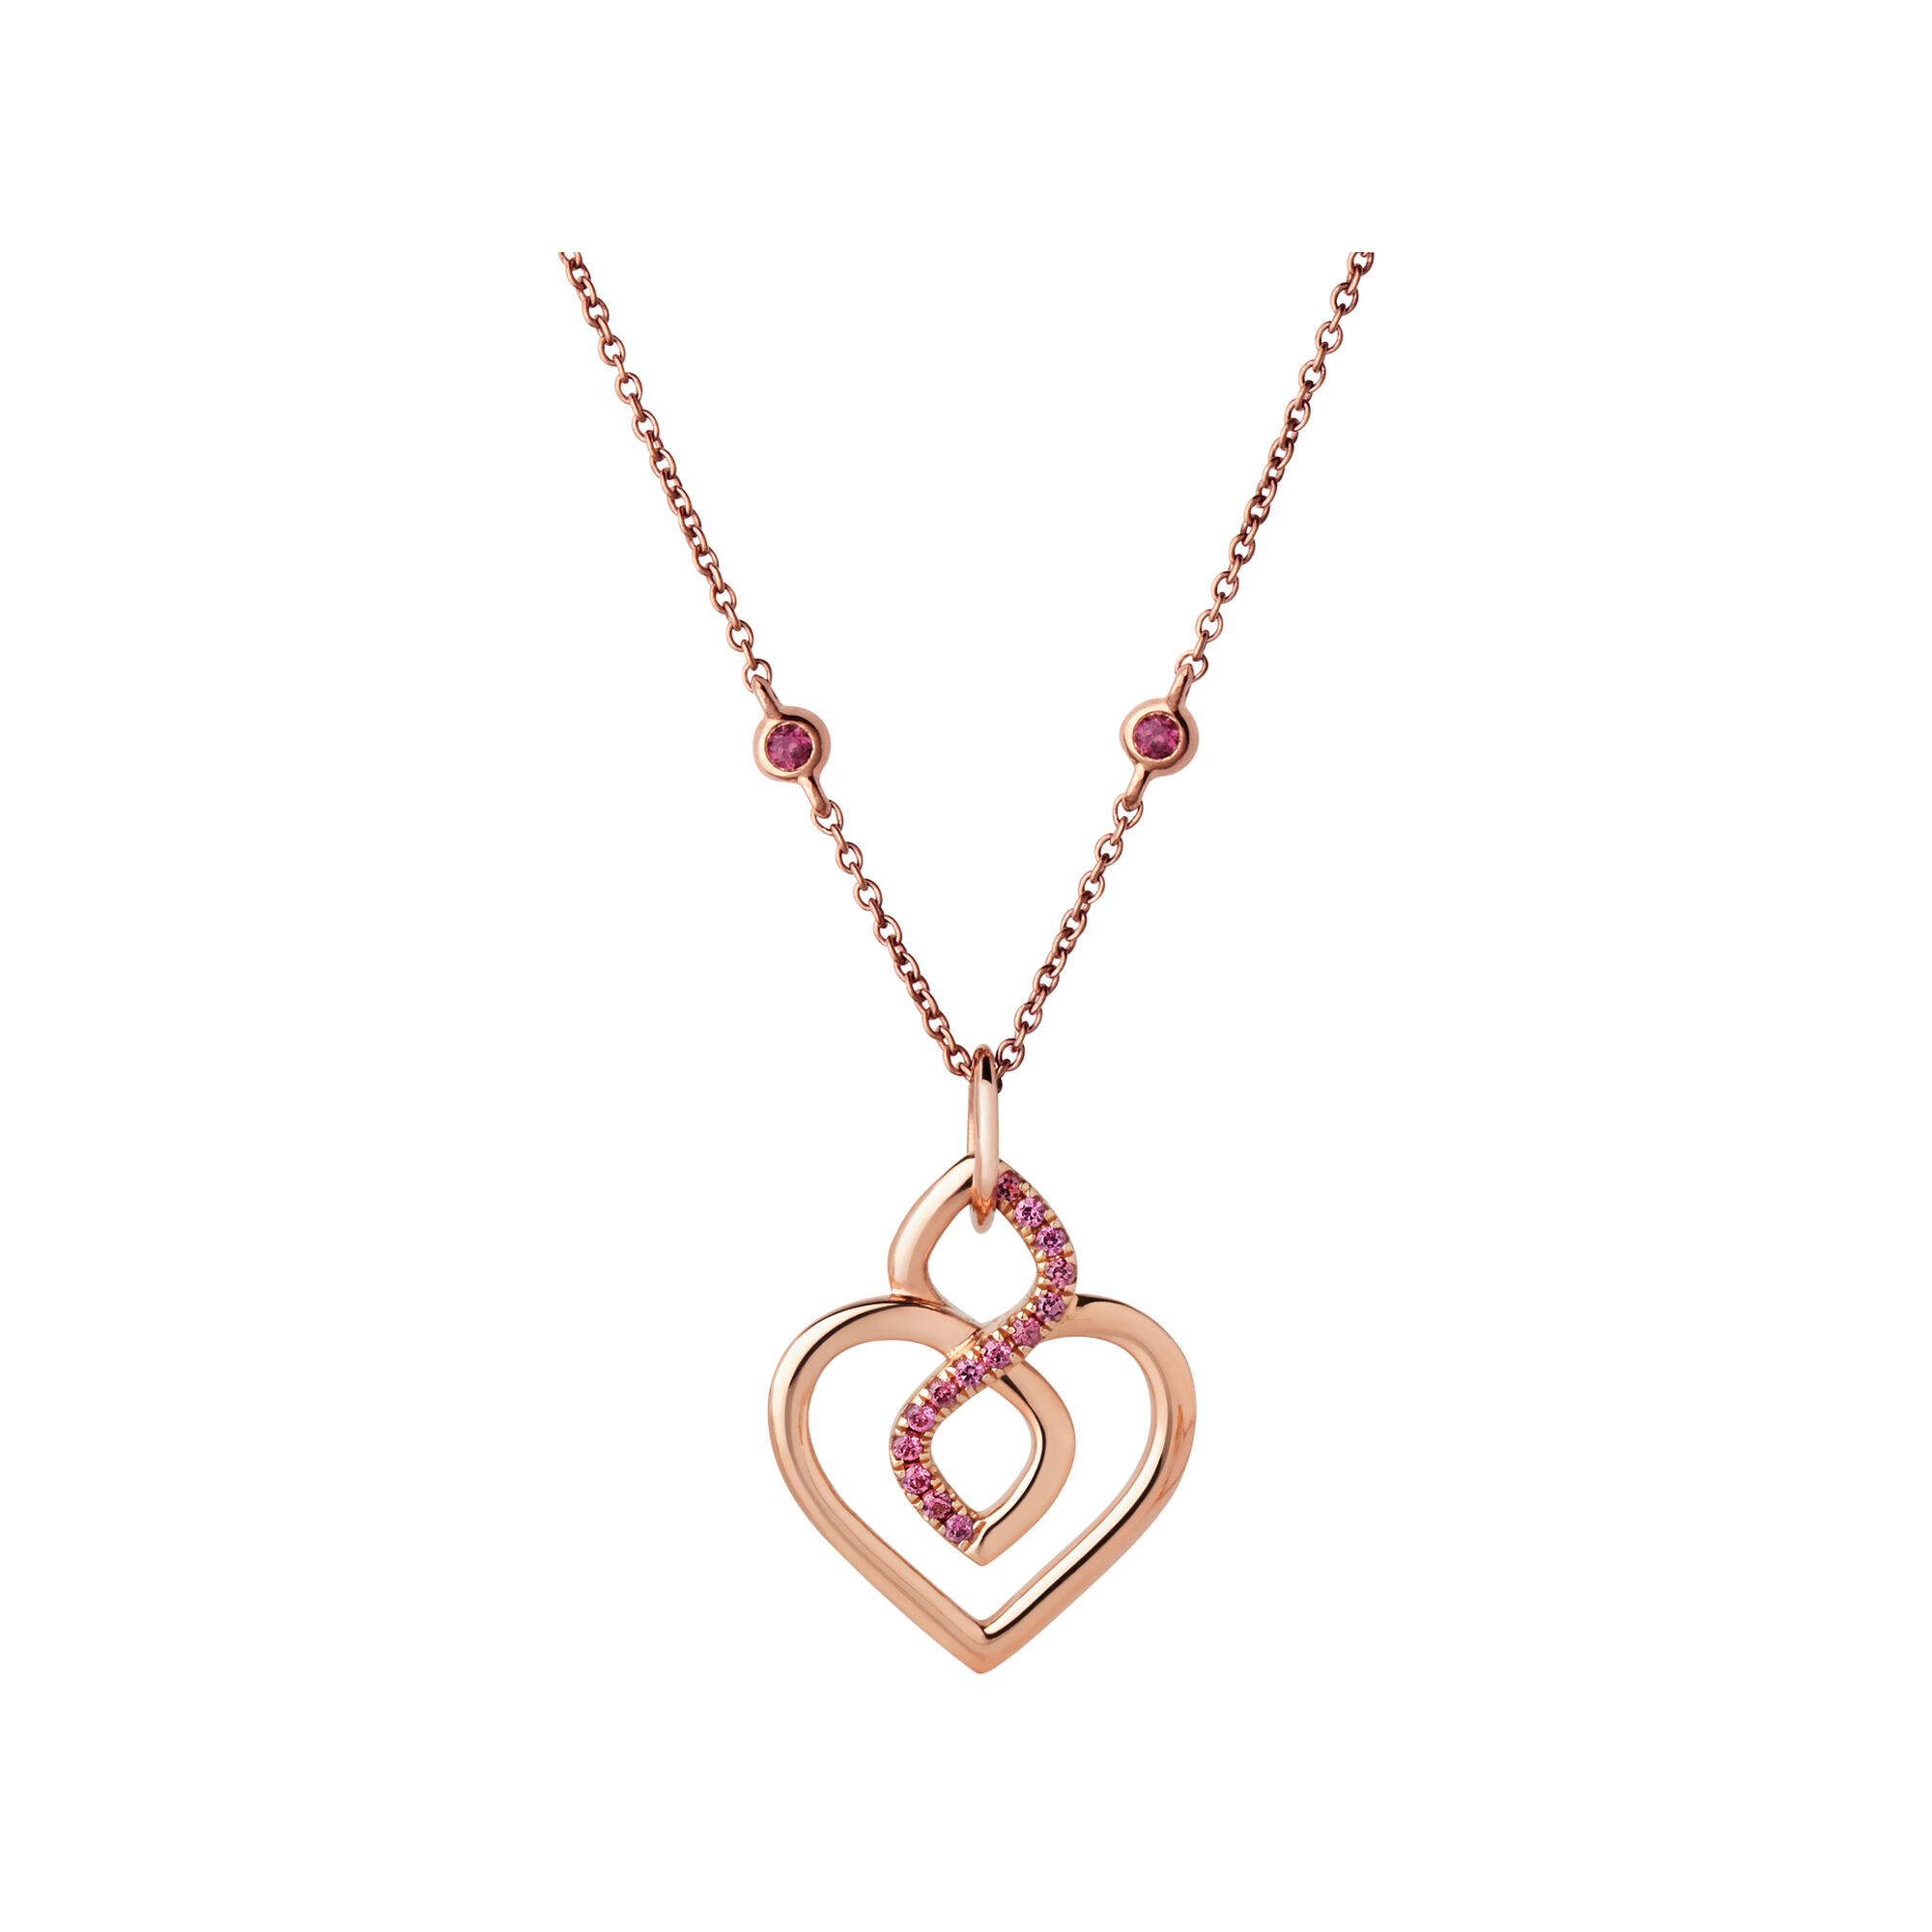 l gold necklace in pendant diamonds with rhodolite garnet rose